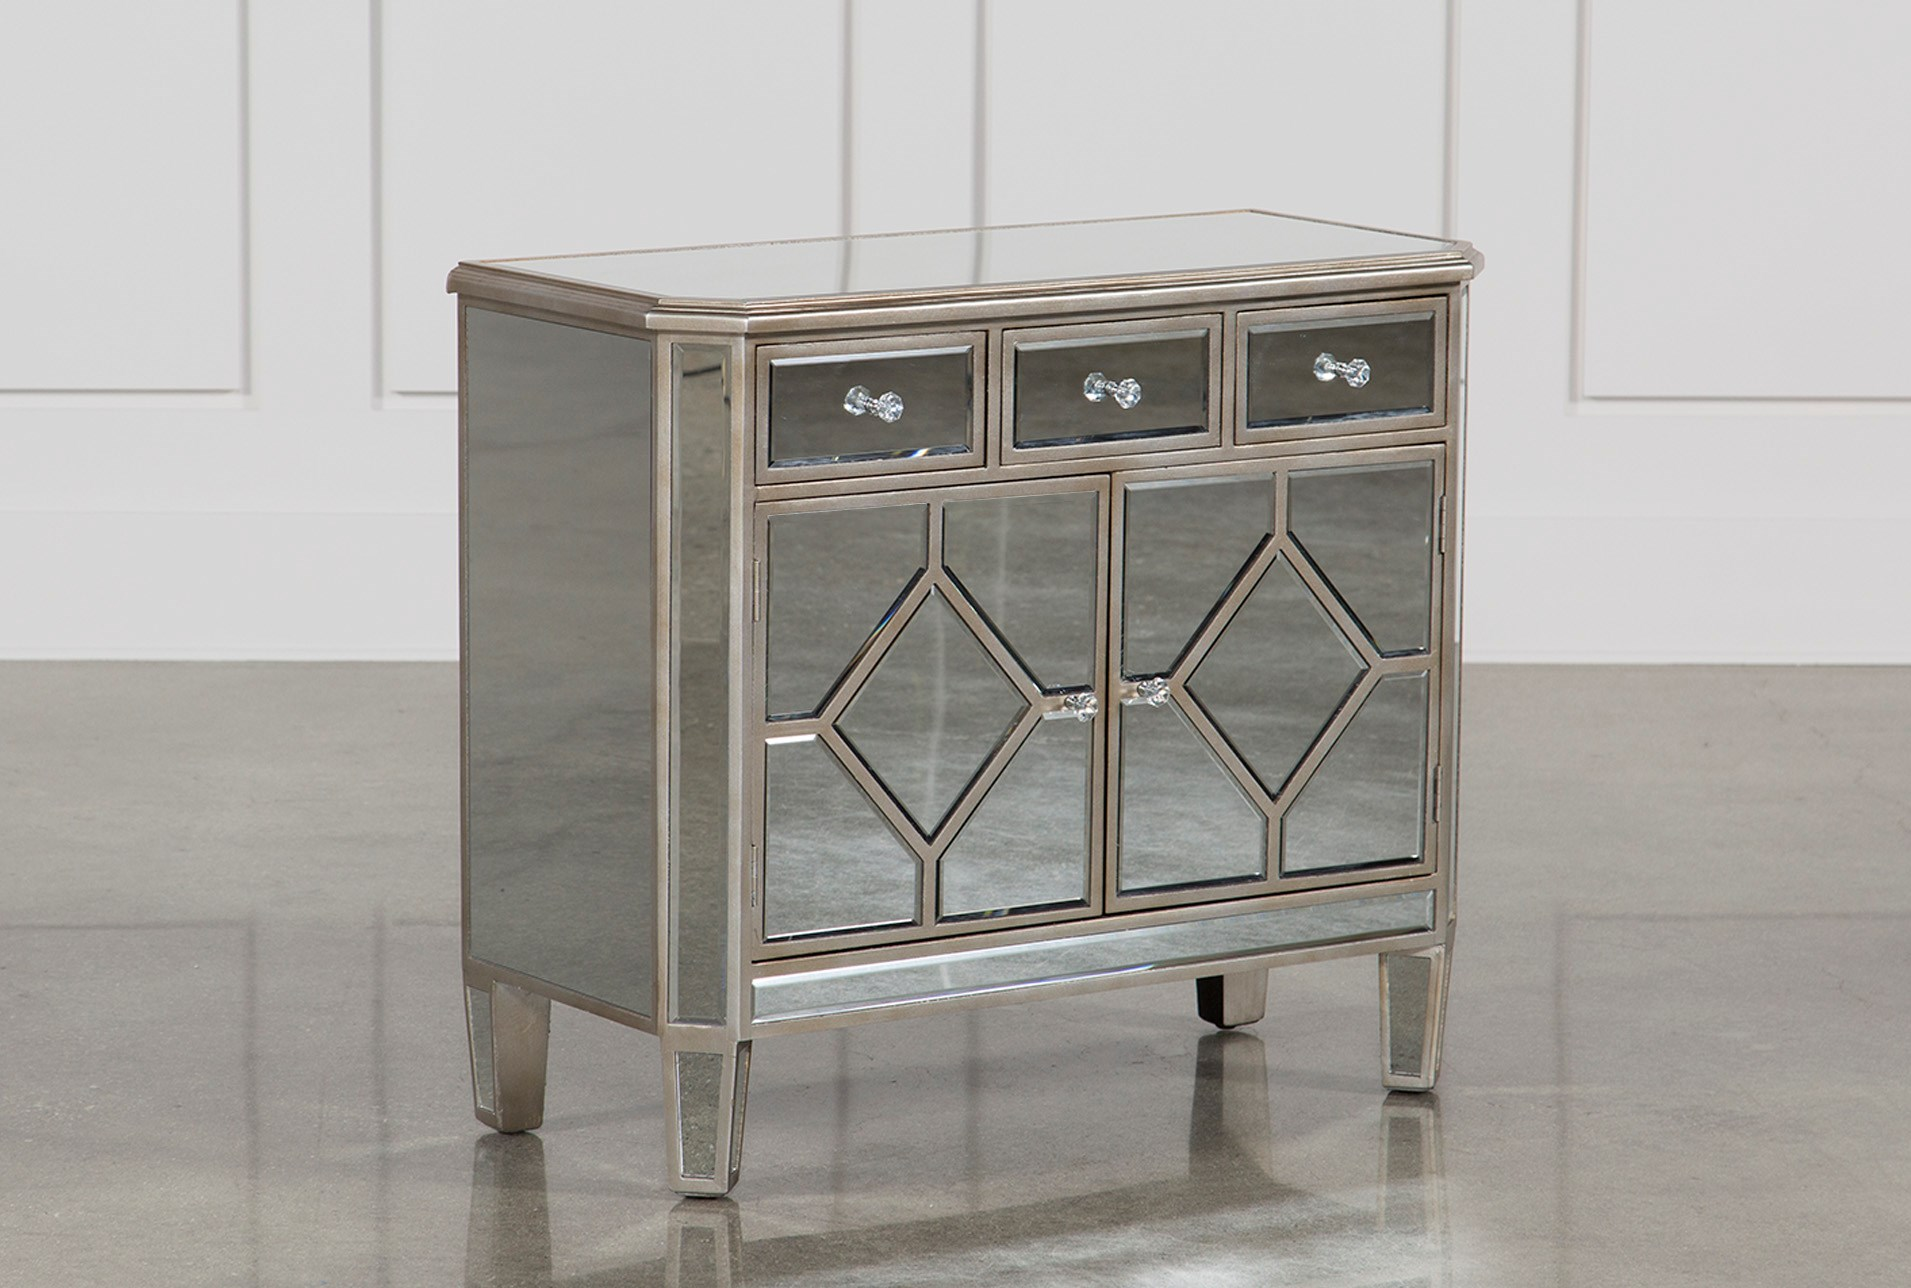 hayworth collection mirrored furniture. added to cart. hayworth mirrored collection furniture i